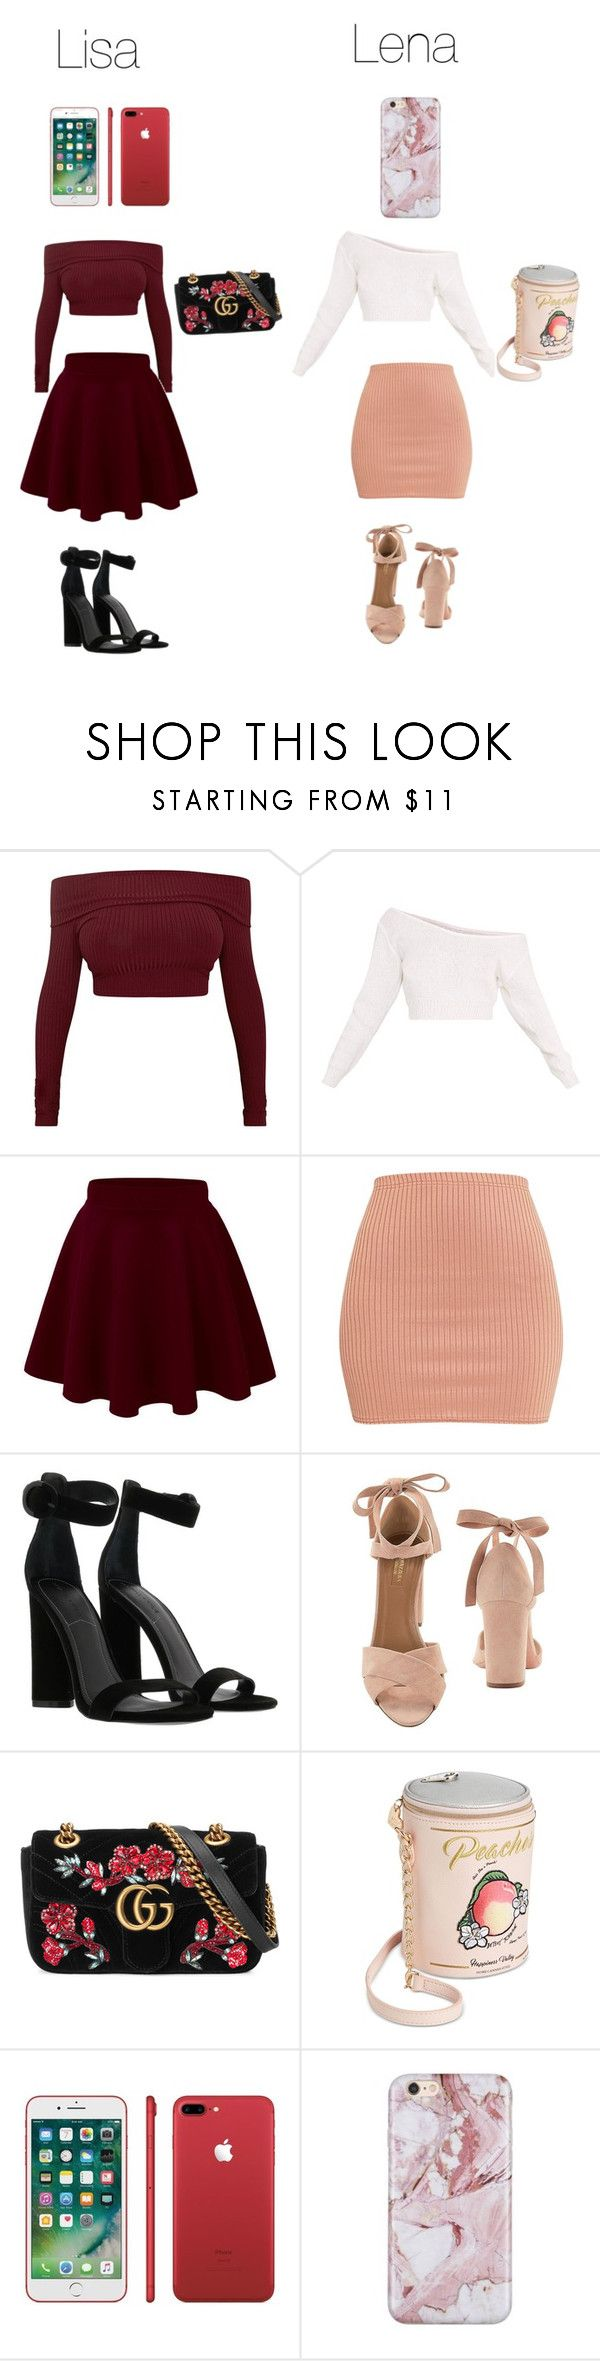 """Lisa or Lena"" by layla07 ❤ liked on Polyvore featuring Kendall + Kylie, Aquazzura, Gucci and Betsey Johnson"